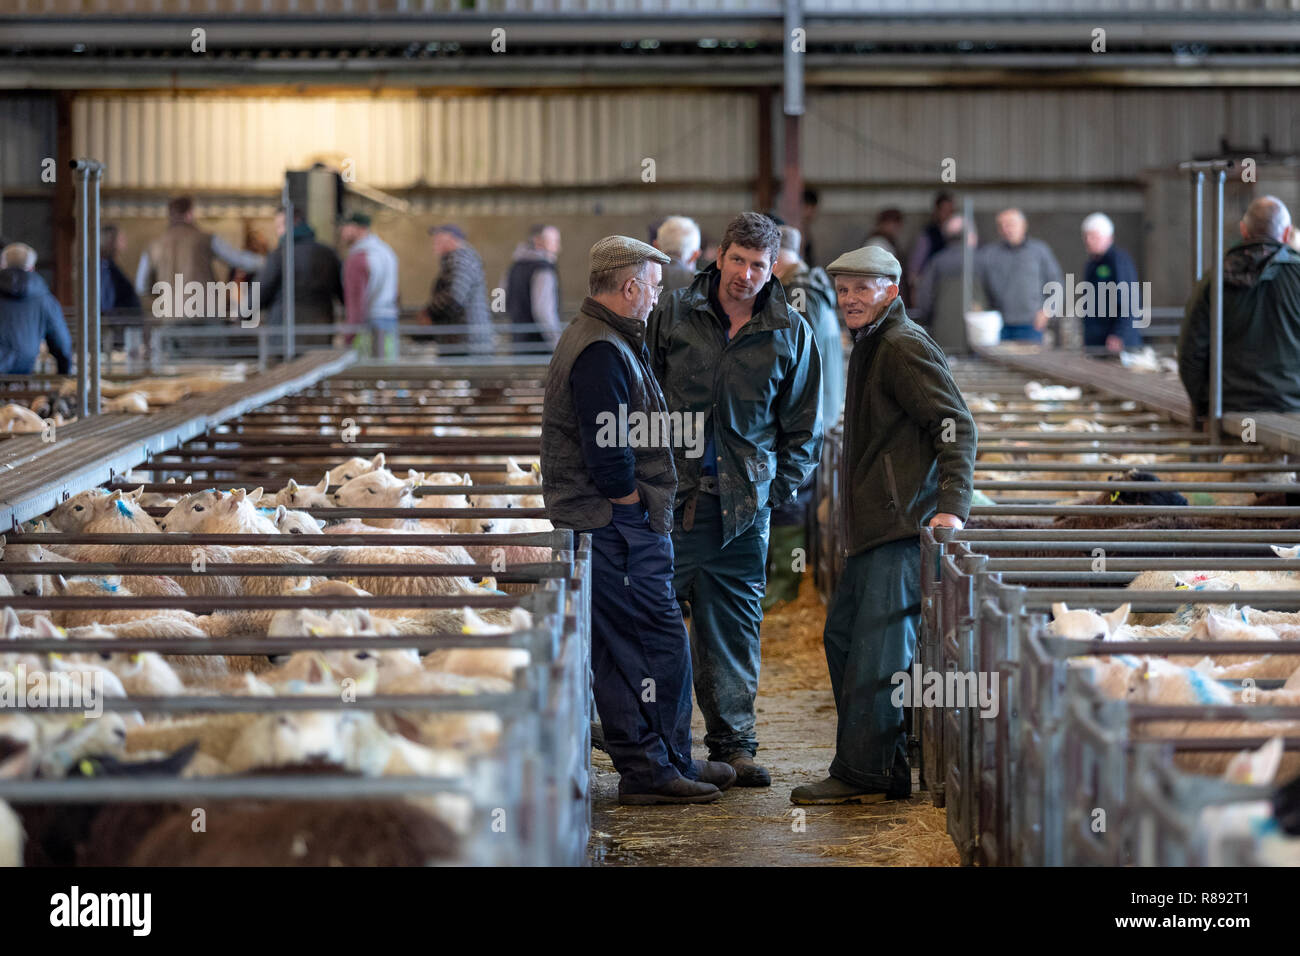 Annual Christmas sheep show and sale at Llandeilo West Wales Great Britain Stock Photo